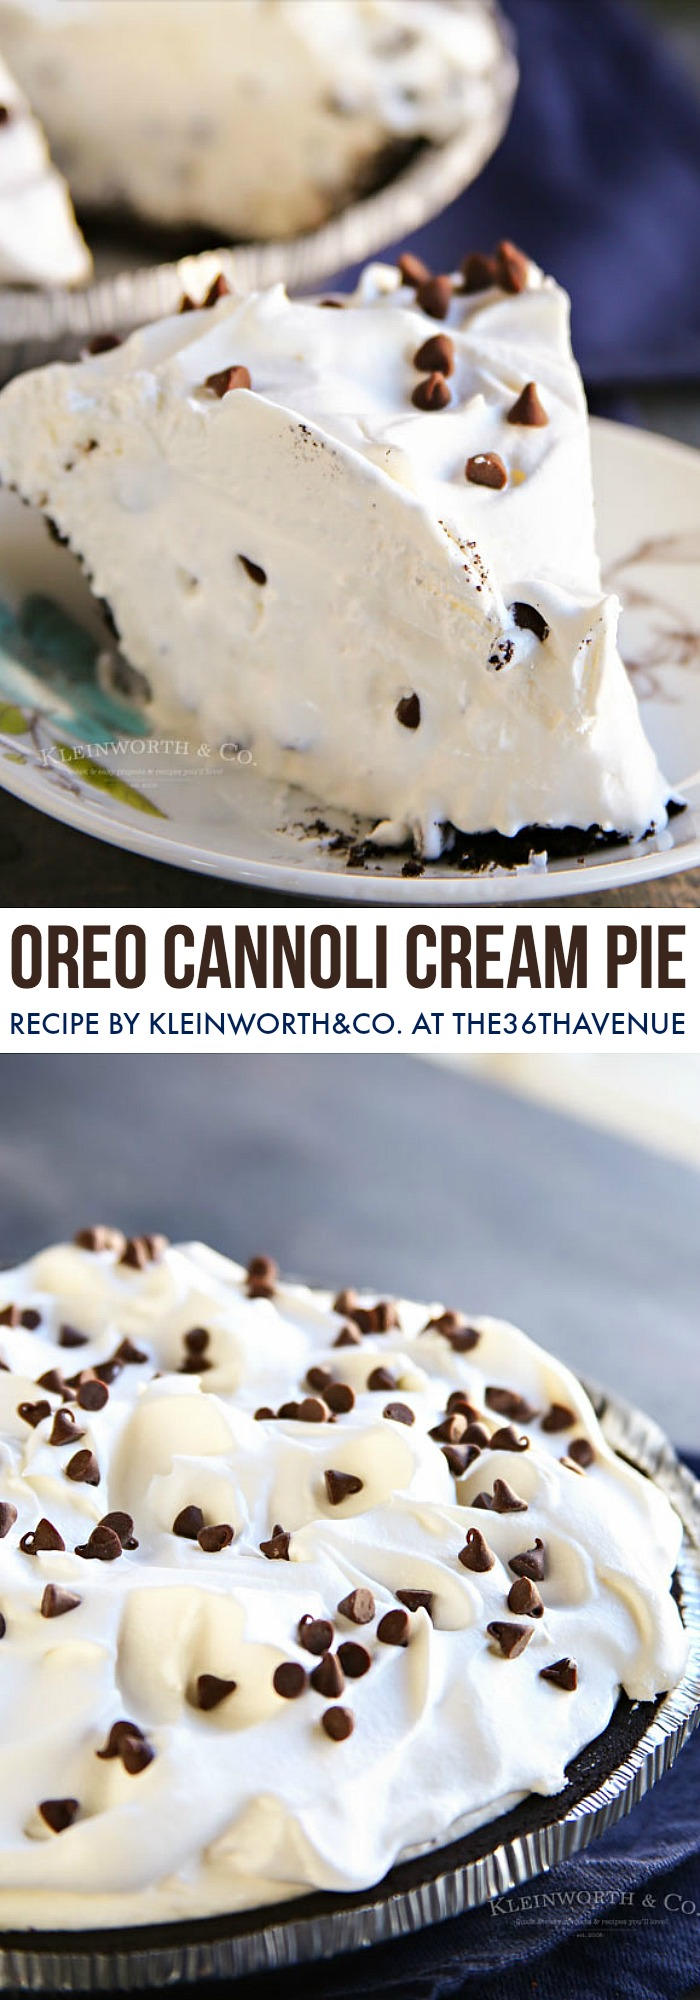 Easy Pie Recipe - This Oreo Cannoli Cream Pie is the perfect dessert for every celebration